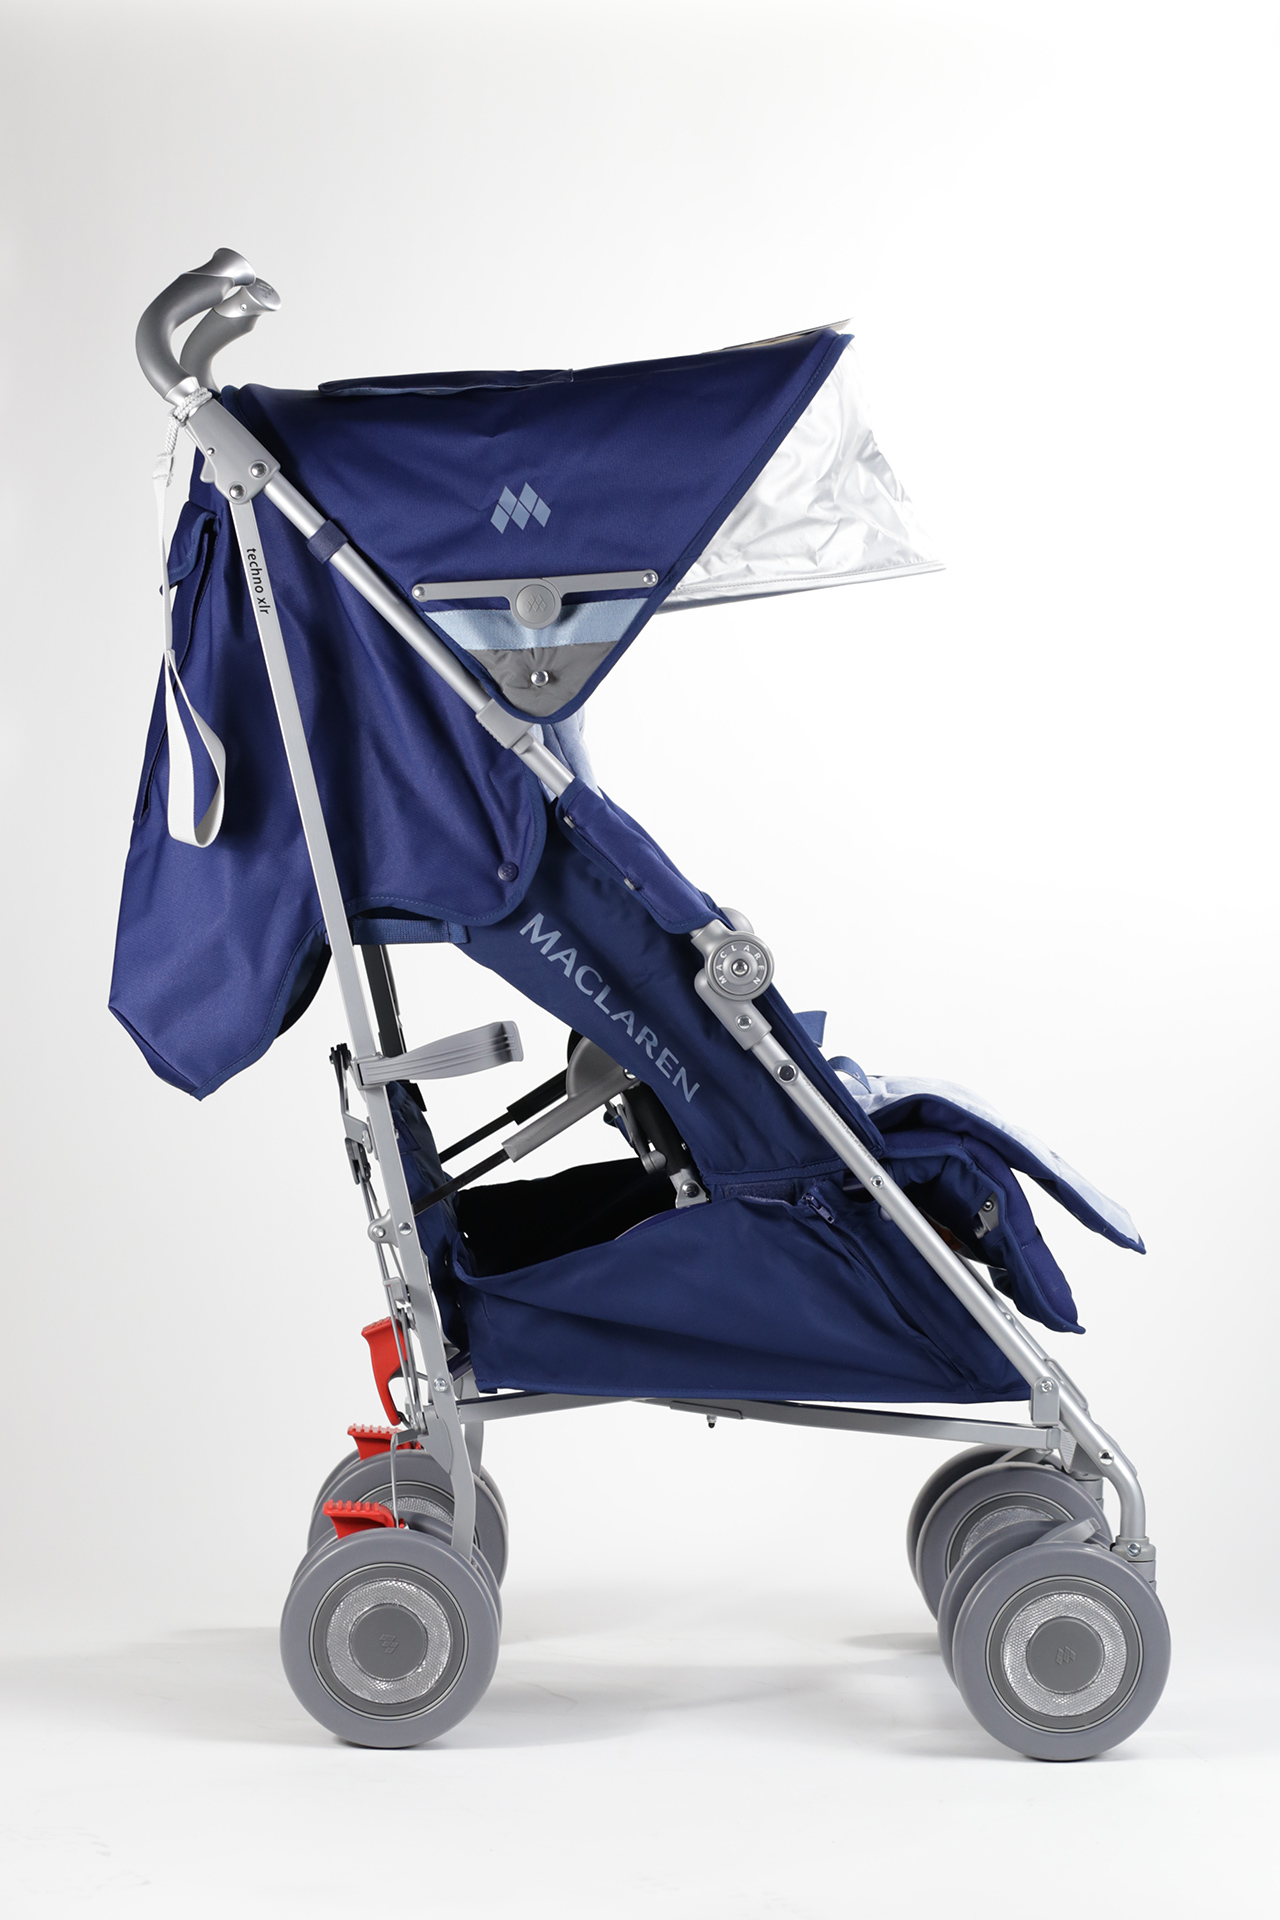 maclaren buggy techno xlr 2015 soft blue buy at kidsroom strollers. Black Bedroom Furniture Sets. Home Design Ideas